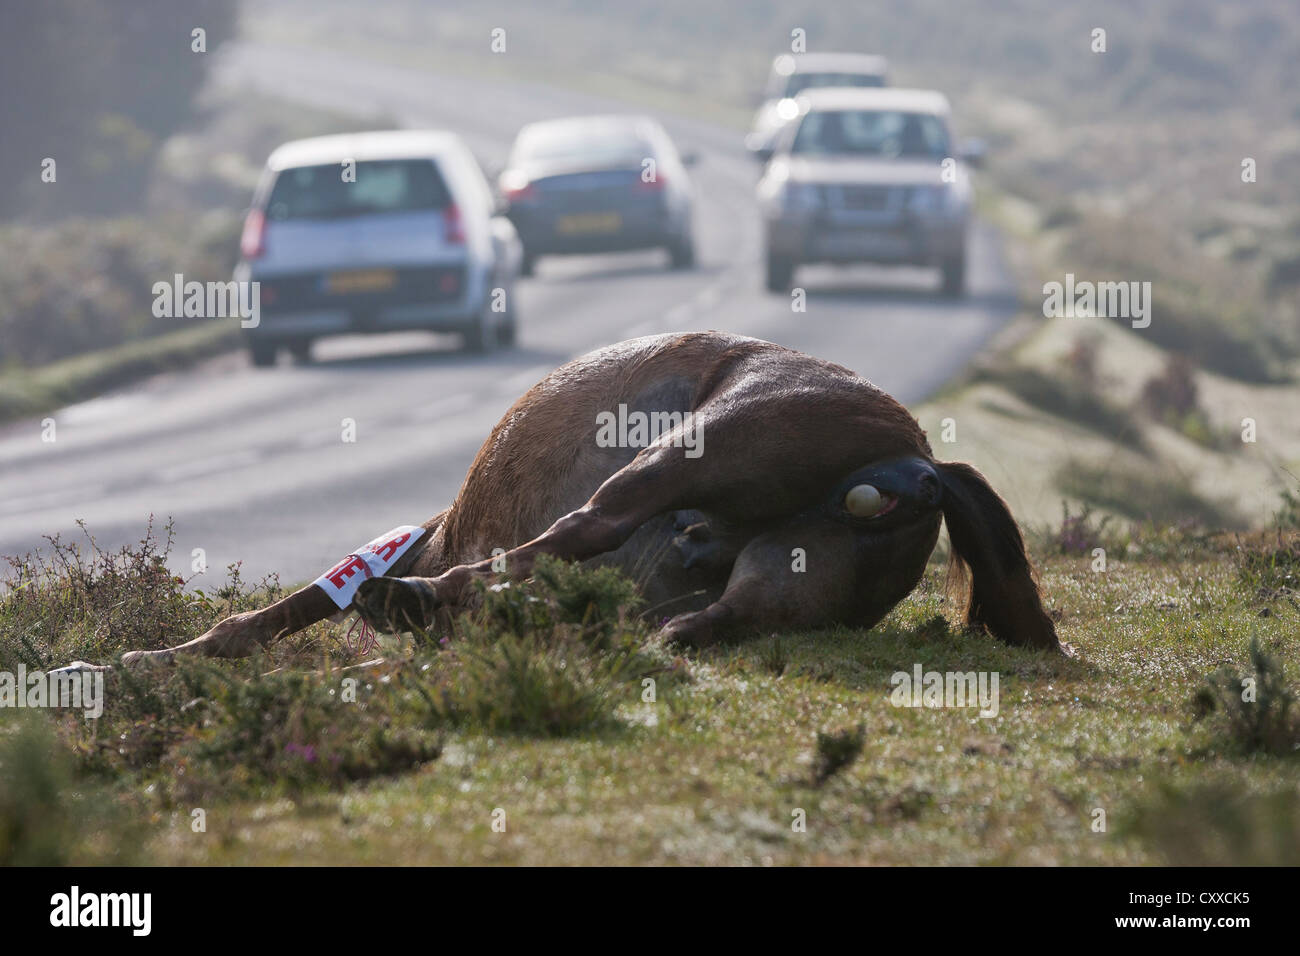 A pony has been hit and killed on the road by a car or lorry in the New Forest National Park, UK Stock Photo